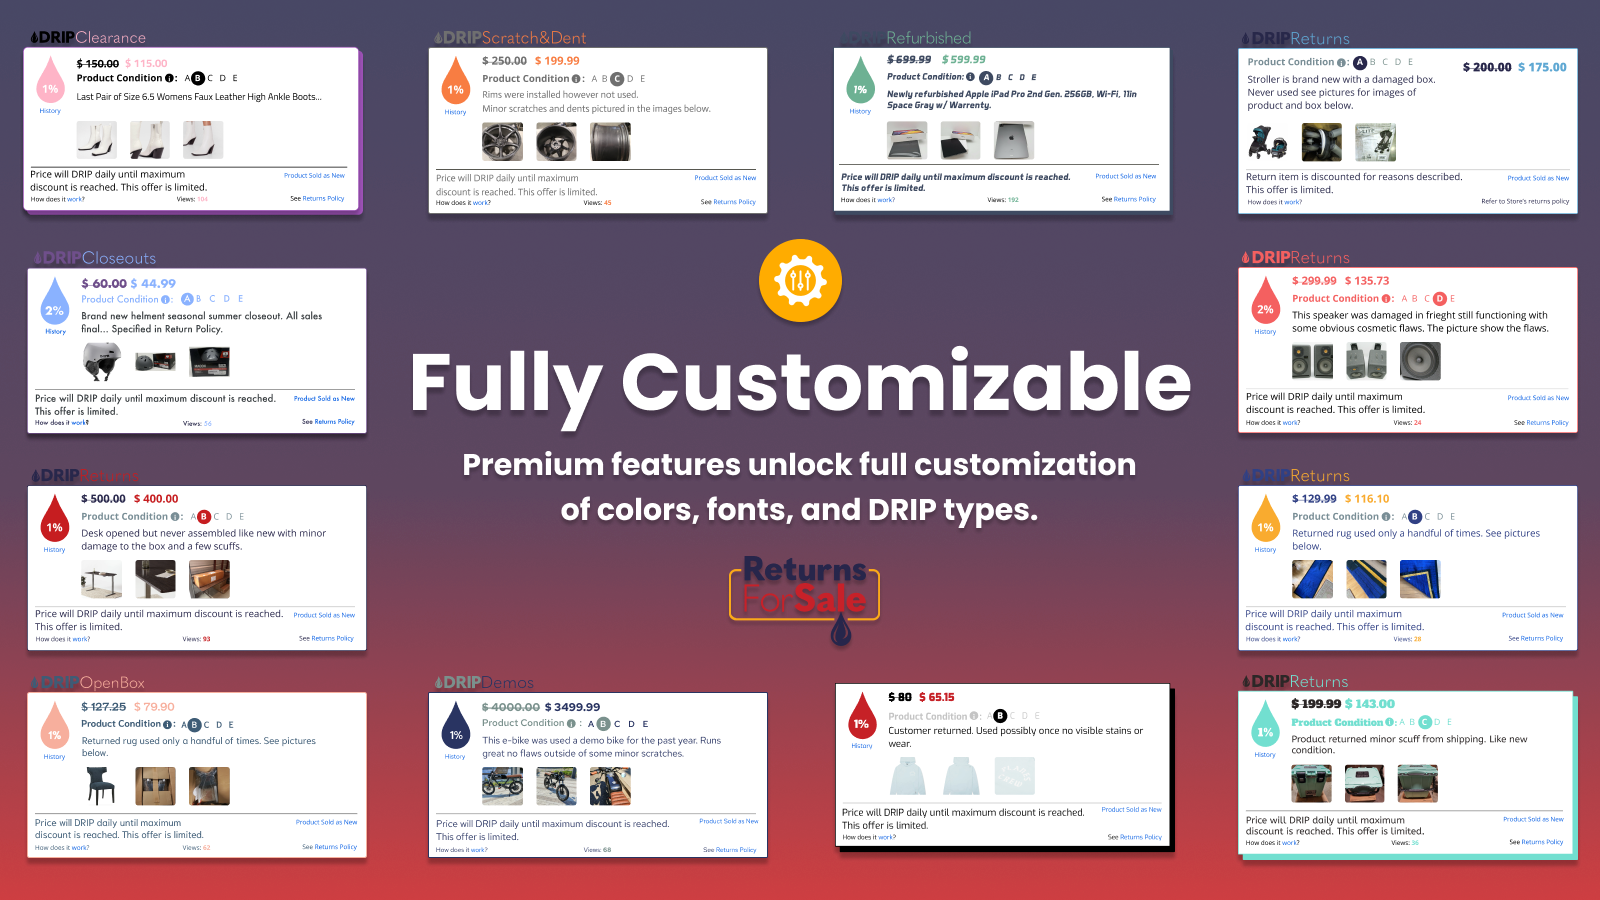 Unlock full customization of colors, fonts, and types.